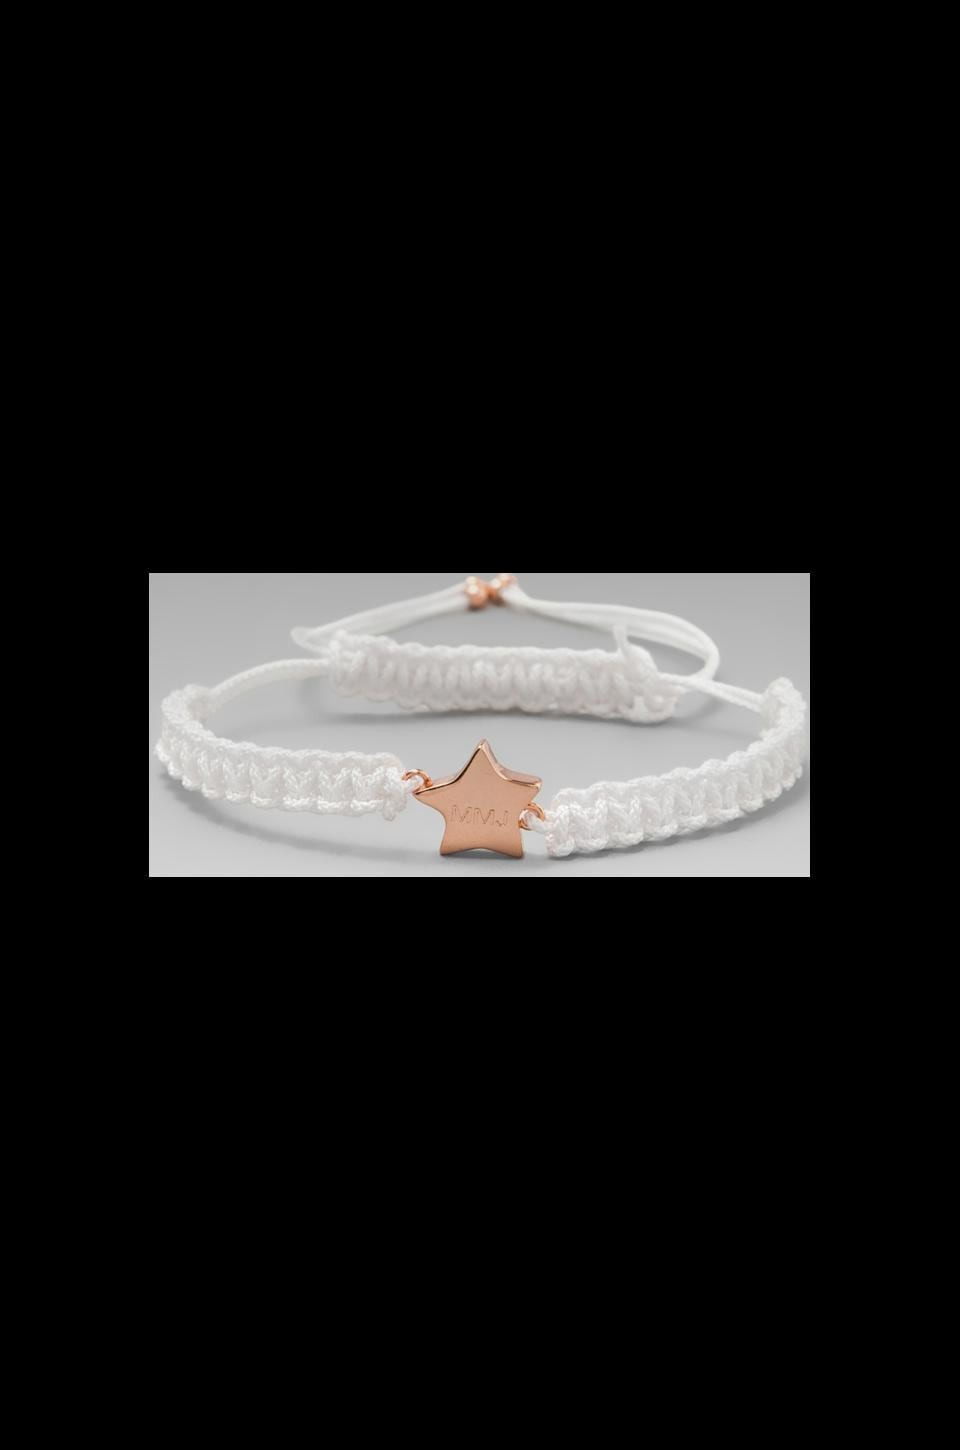 Marc by Marc Jacobs Key Items Multi Woven Star Friendship Bracelet in White (Rose Gold)